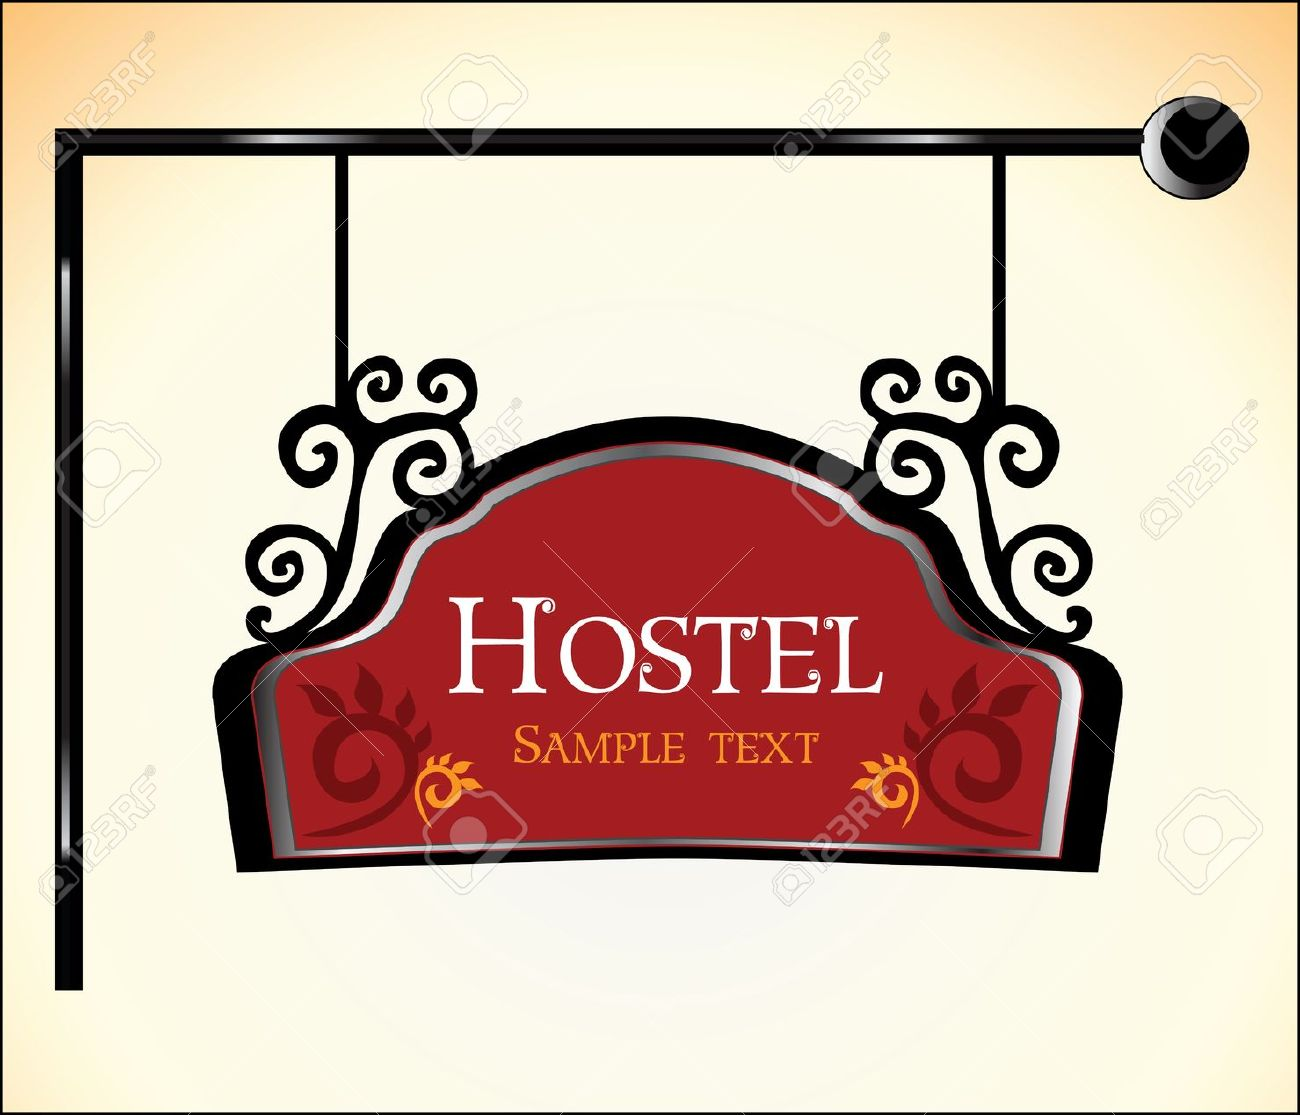 Hostel Sign Royalty Free Cliparts, Vectors, And Stock Illustration.